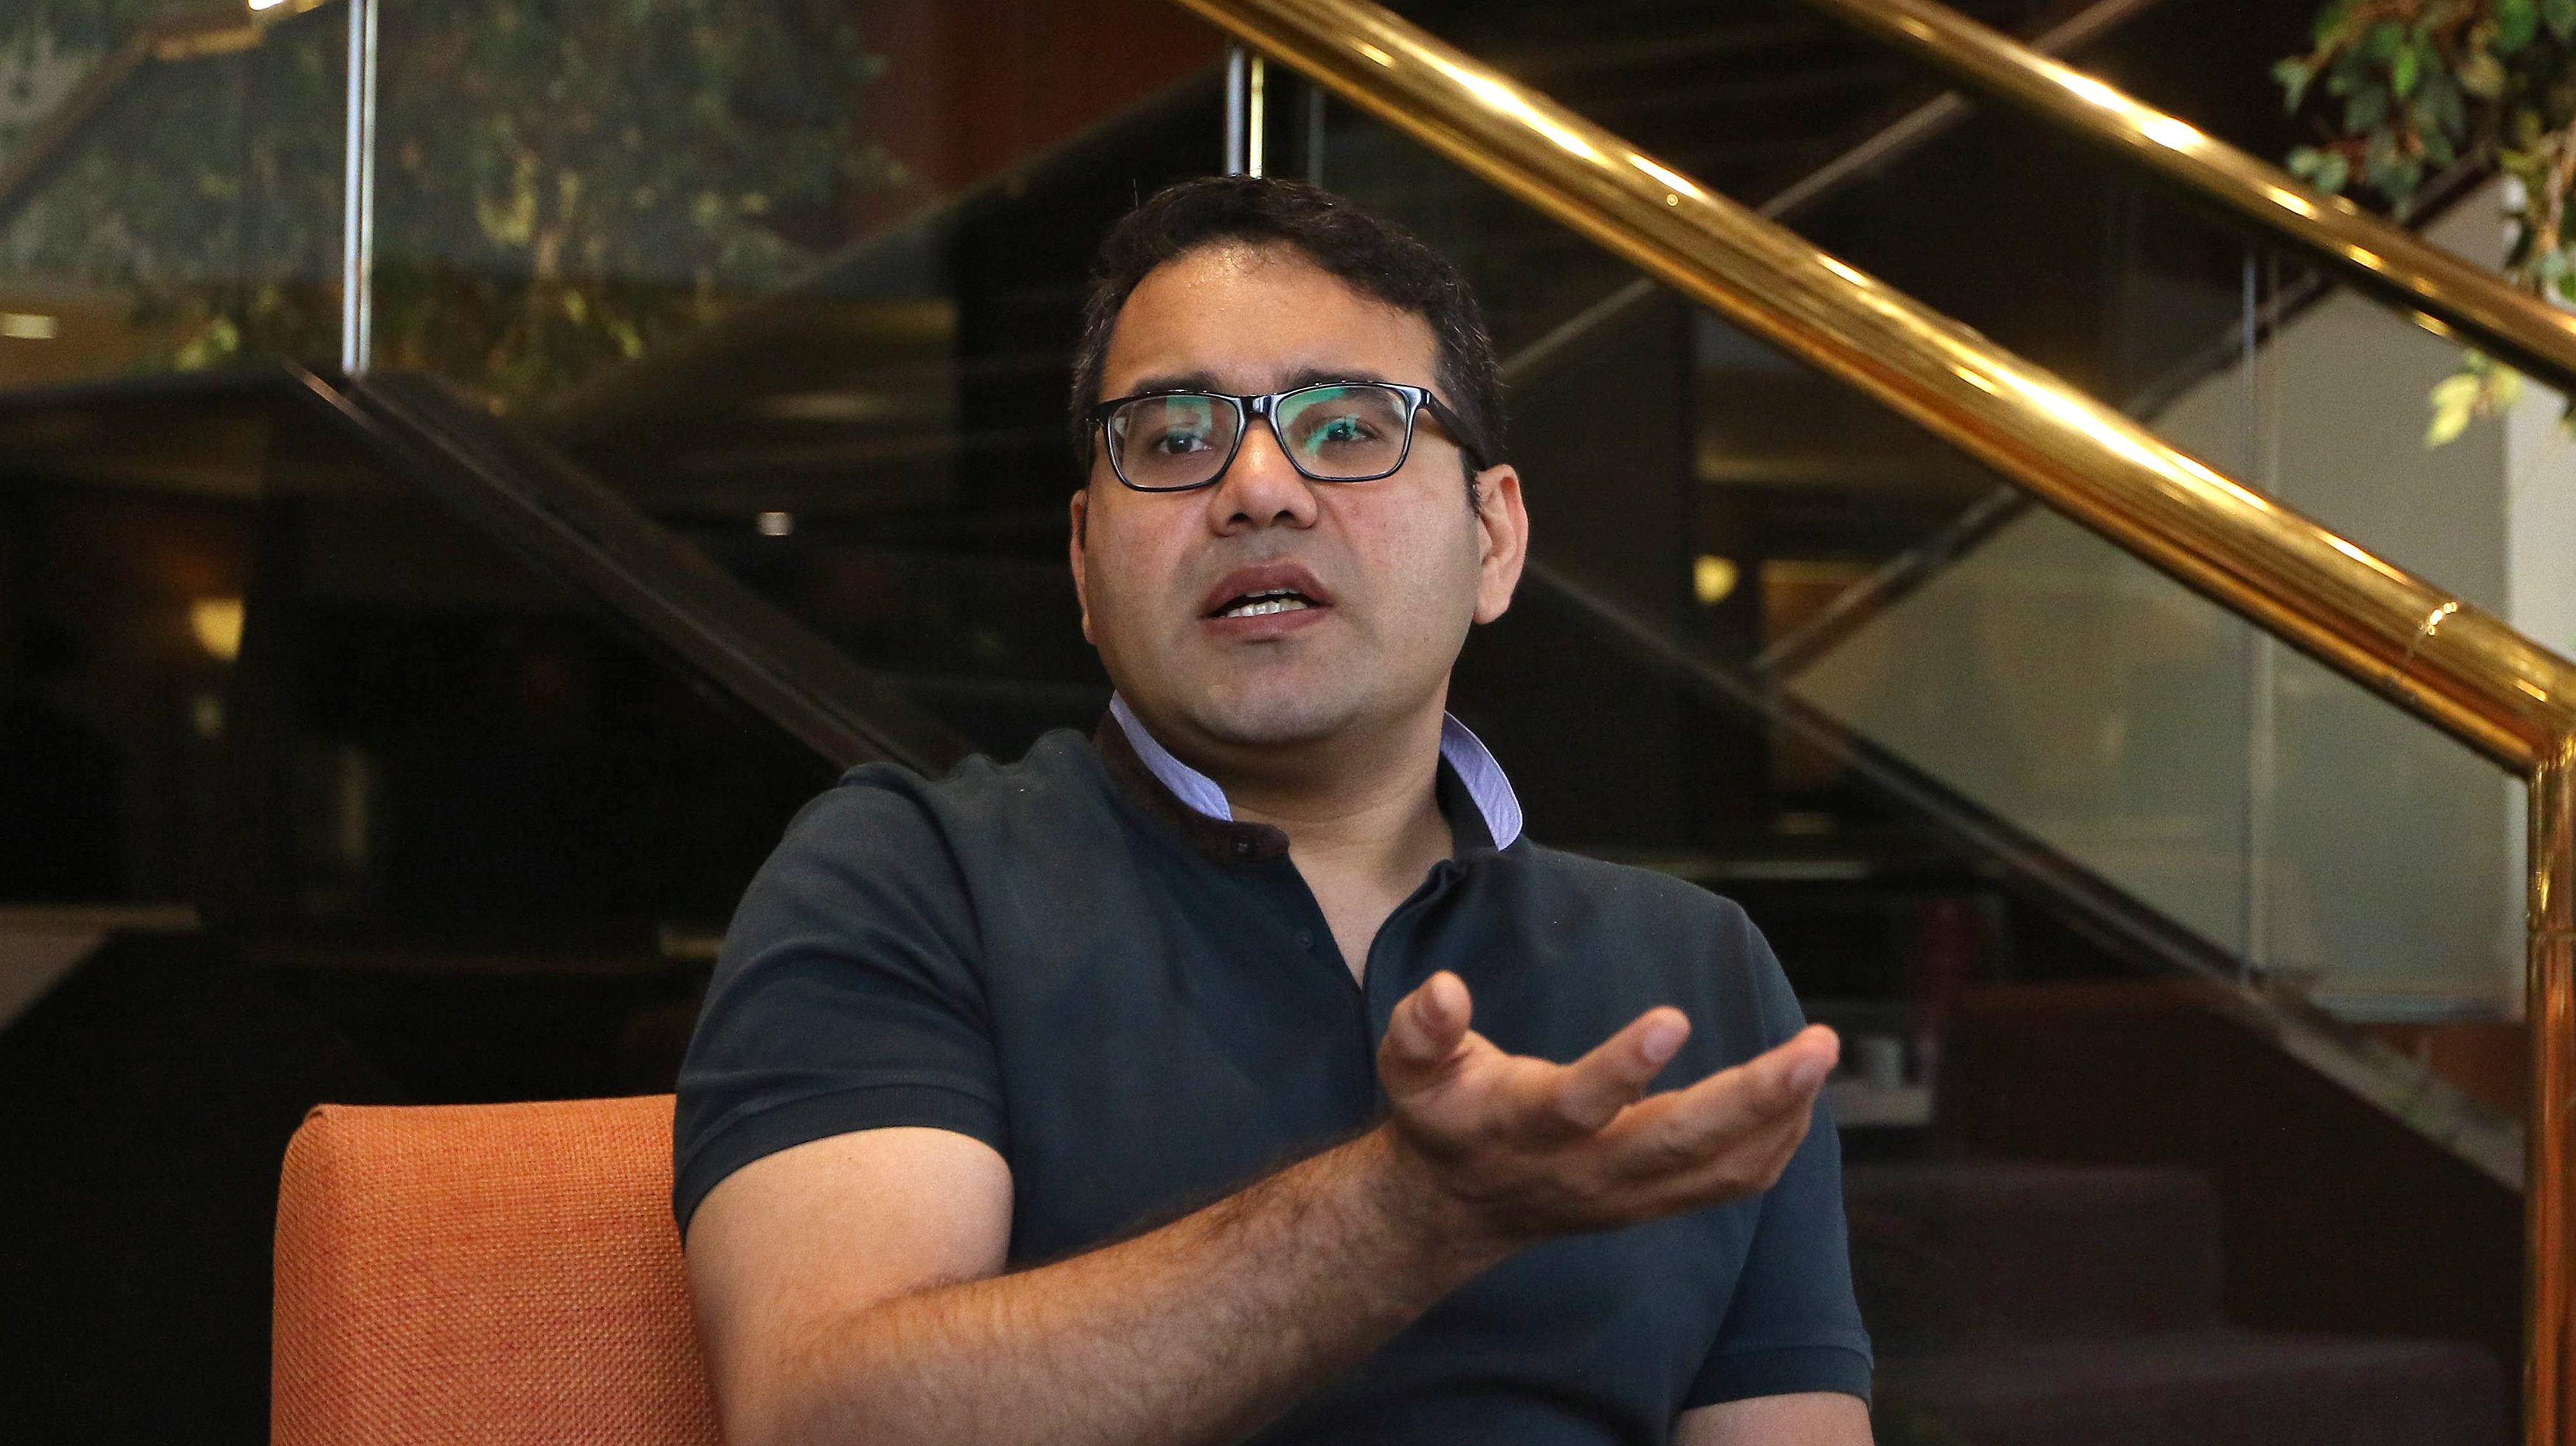 Kunal Bahl, CEO of India's e-commerce firm Snapdeal, speaks during an interview with Reuters in Mumbai, India, February 6, 2017.